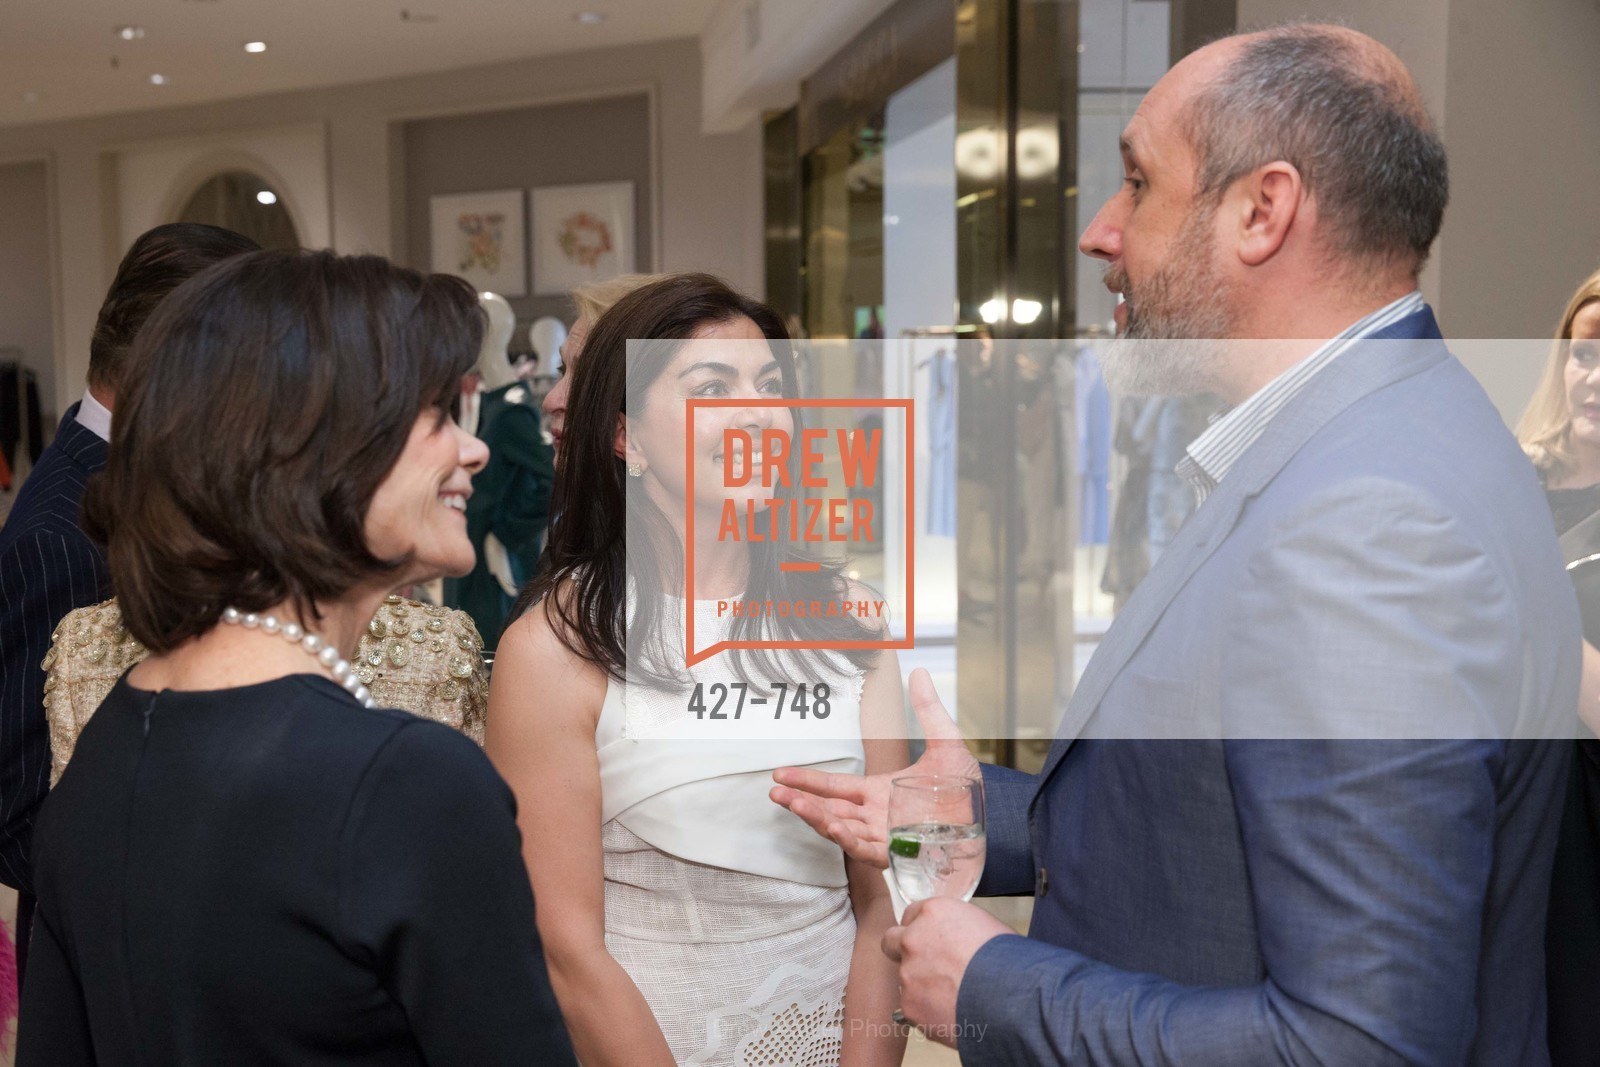 Sara Abassi, PETER COPPING'S Personal Appearance at SAKS FIFTH AVENUE, US, May 22nd, 2015,Drew Altizer, Drew Altizer Photography, full-service agency, private events, San Francisco photographer, photographer california